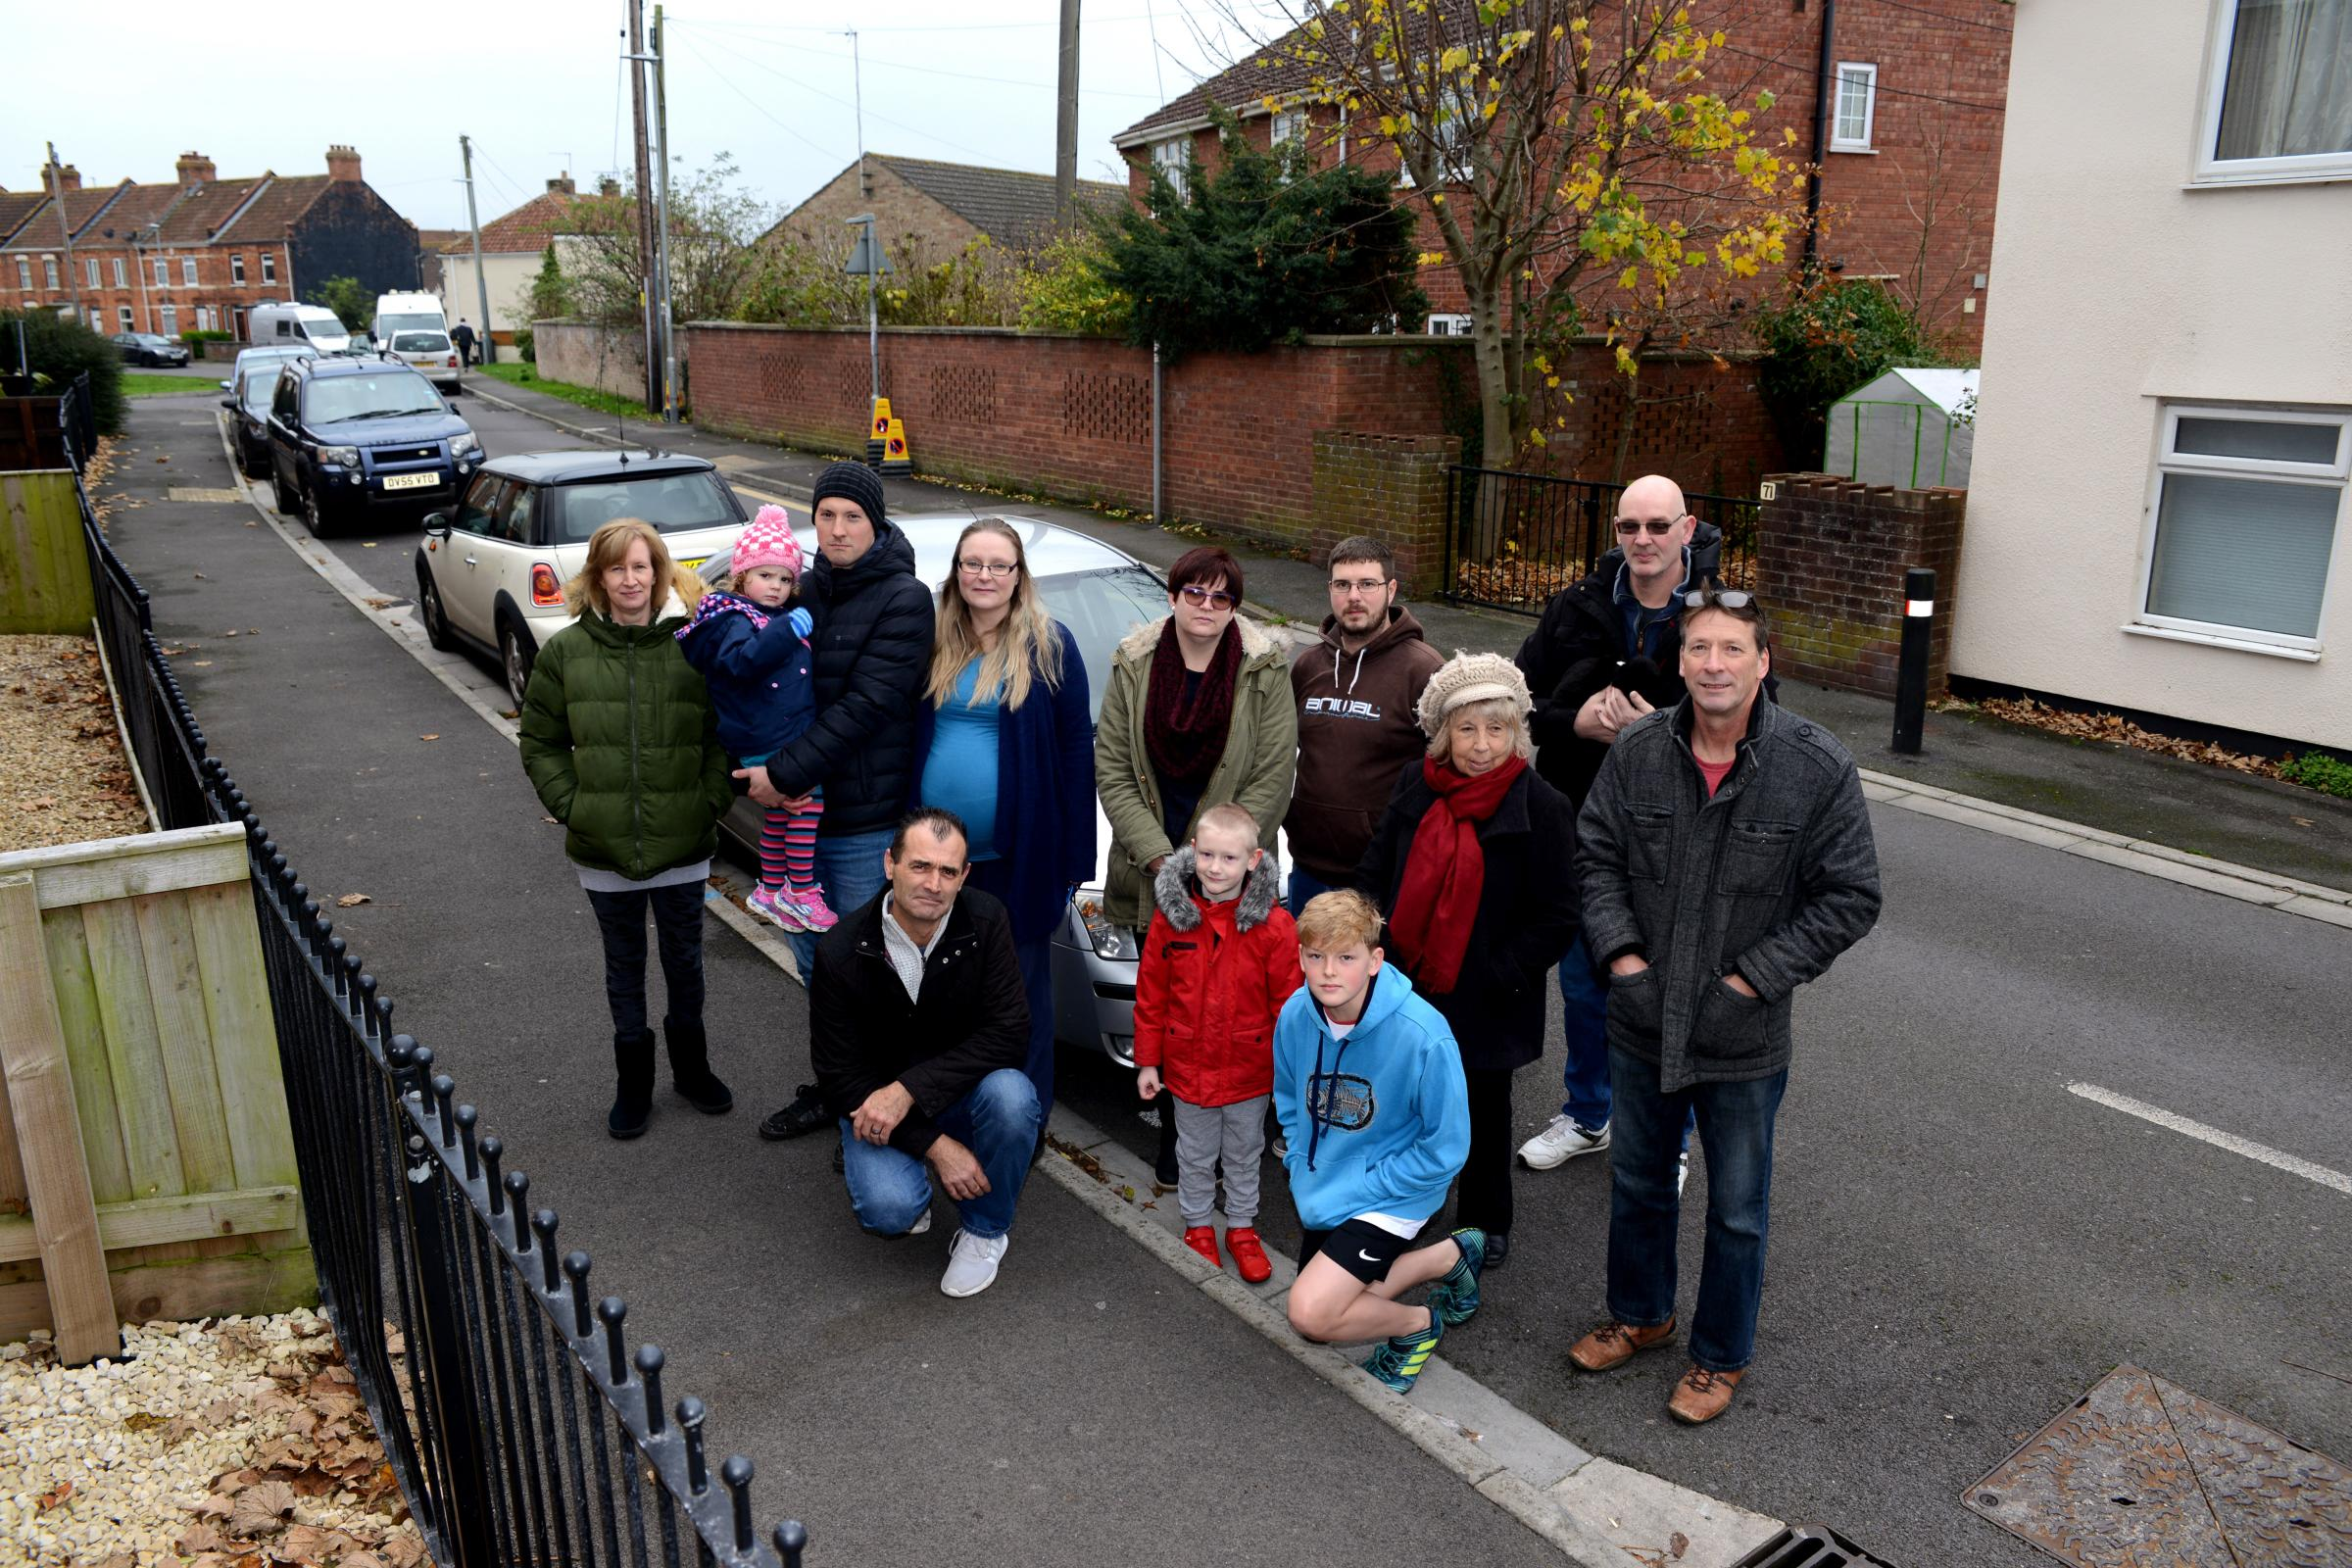 ANGER: Residents on Worston Road are against plans to extend double yellow lines further down the street